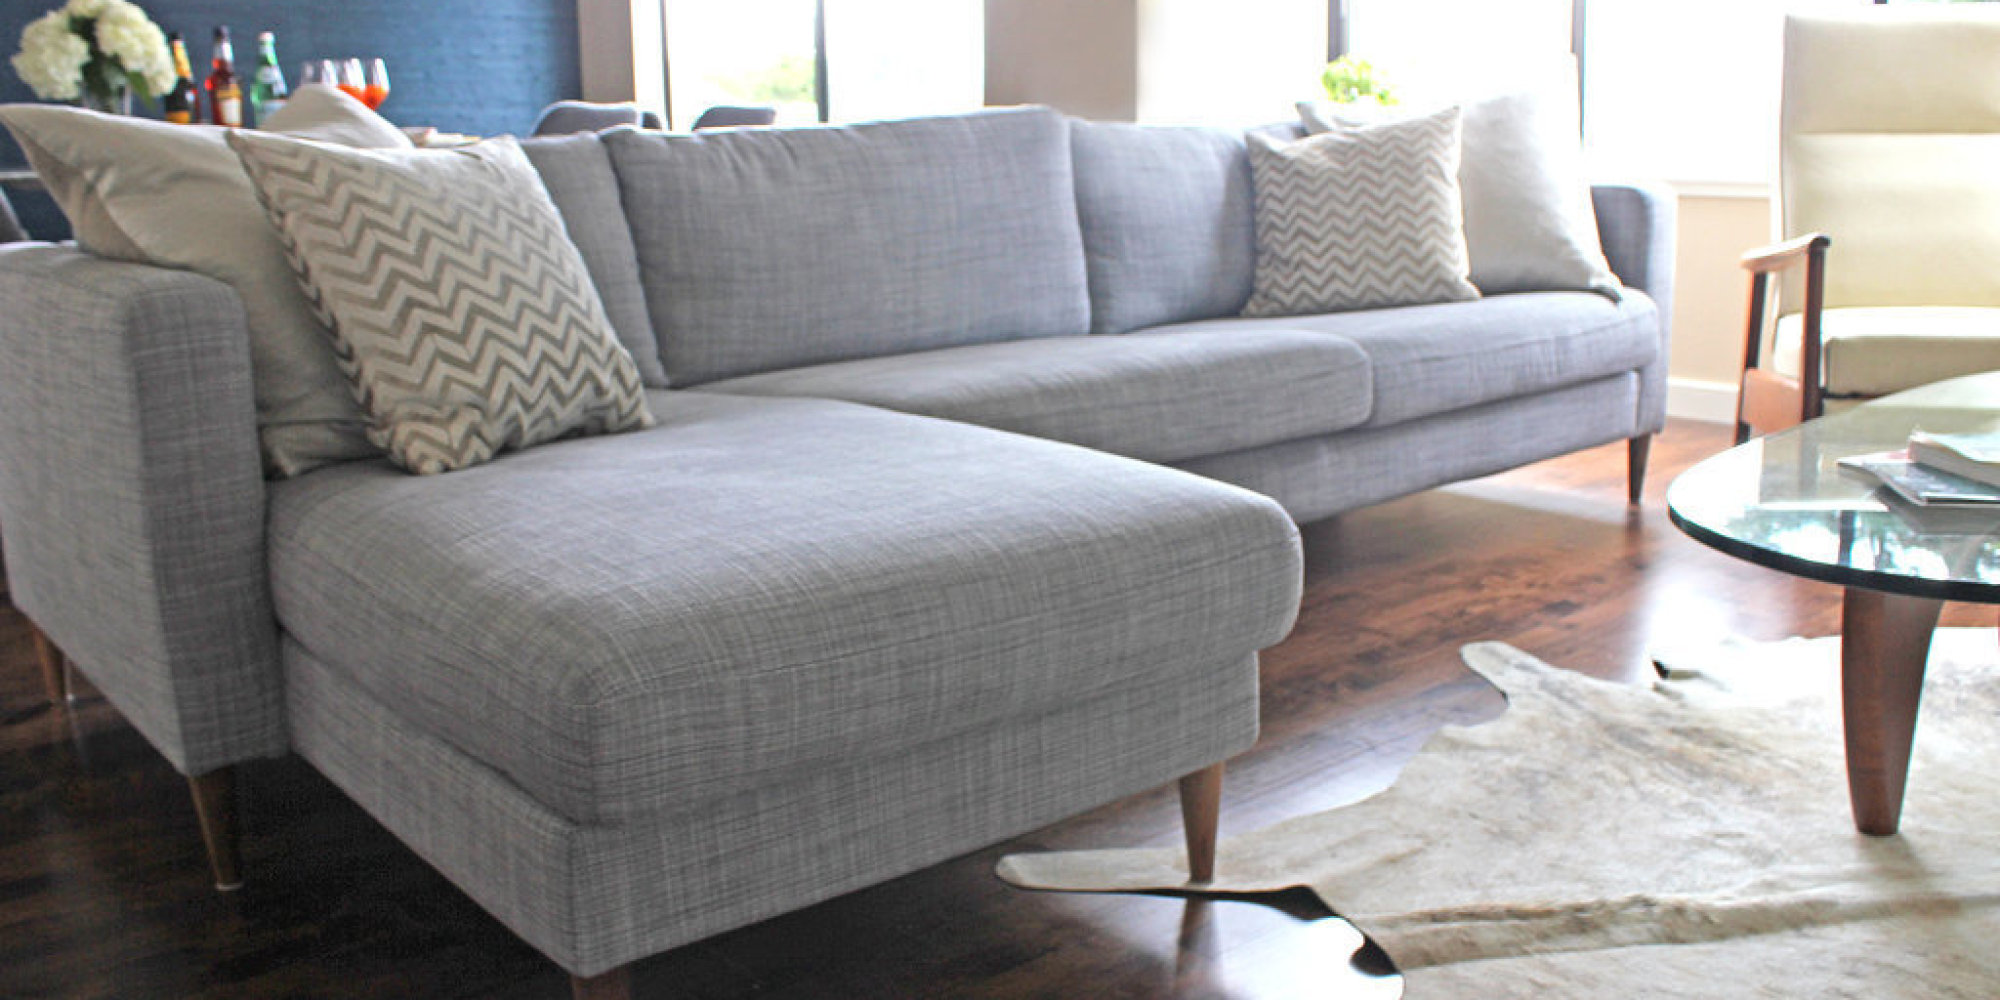 Awesome 60 Couches Ikea Decorating Inspiration Fabric Couches